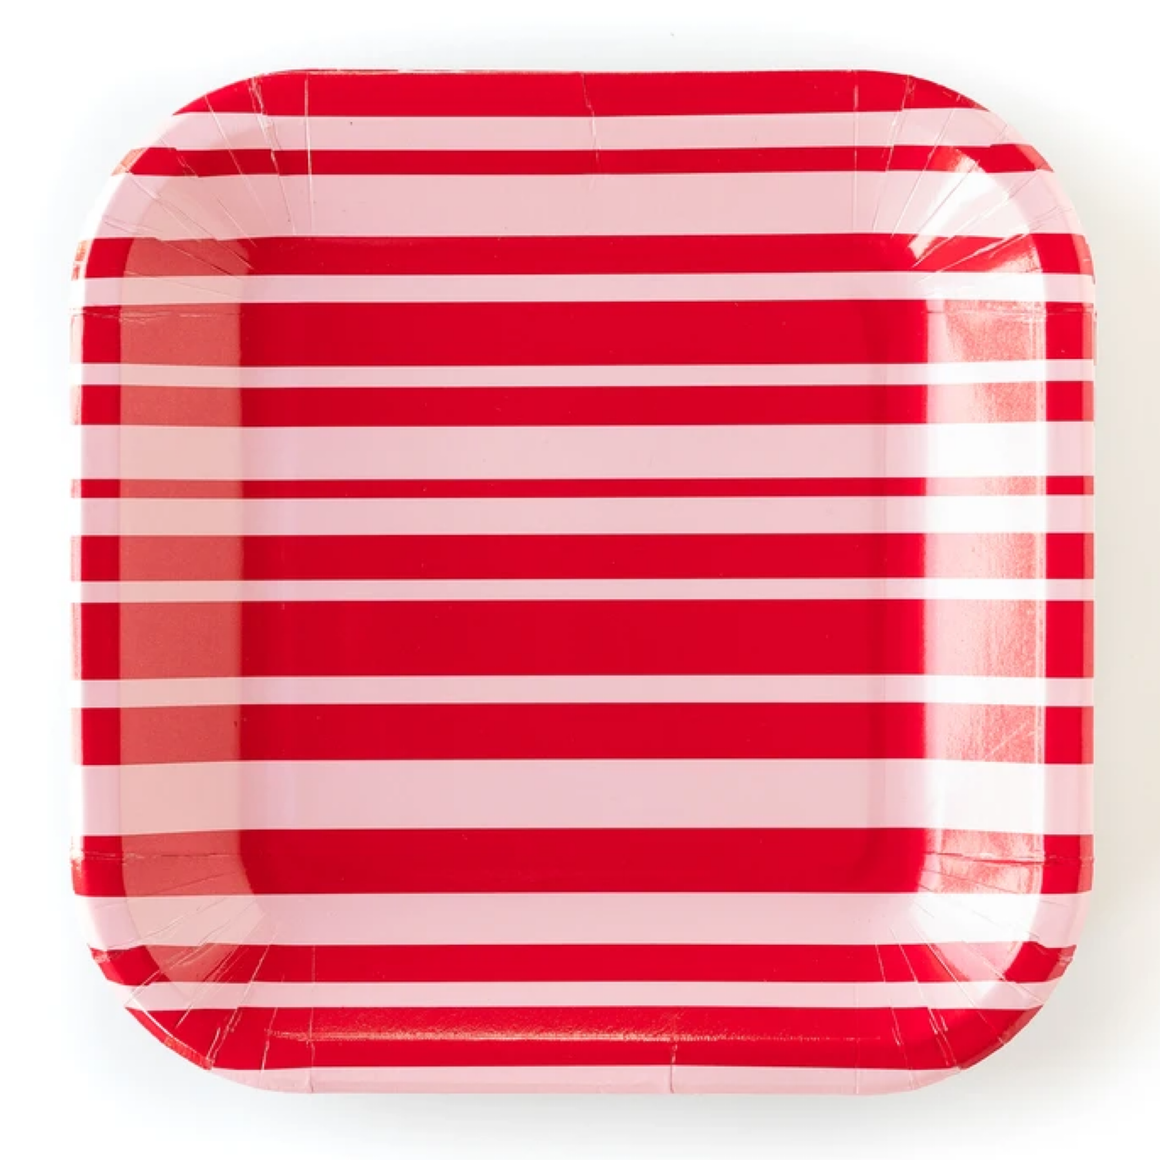 PLATES - LARGE RED & PINK STRIPES